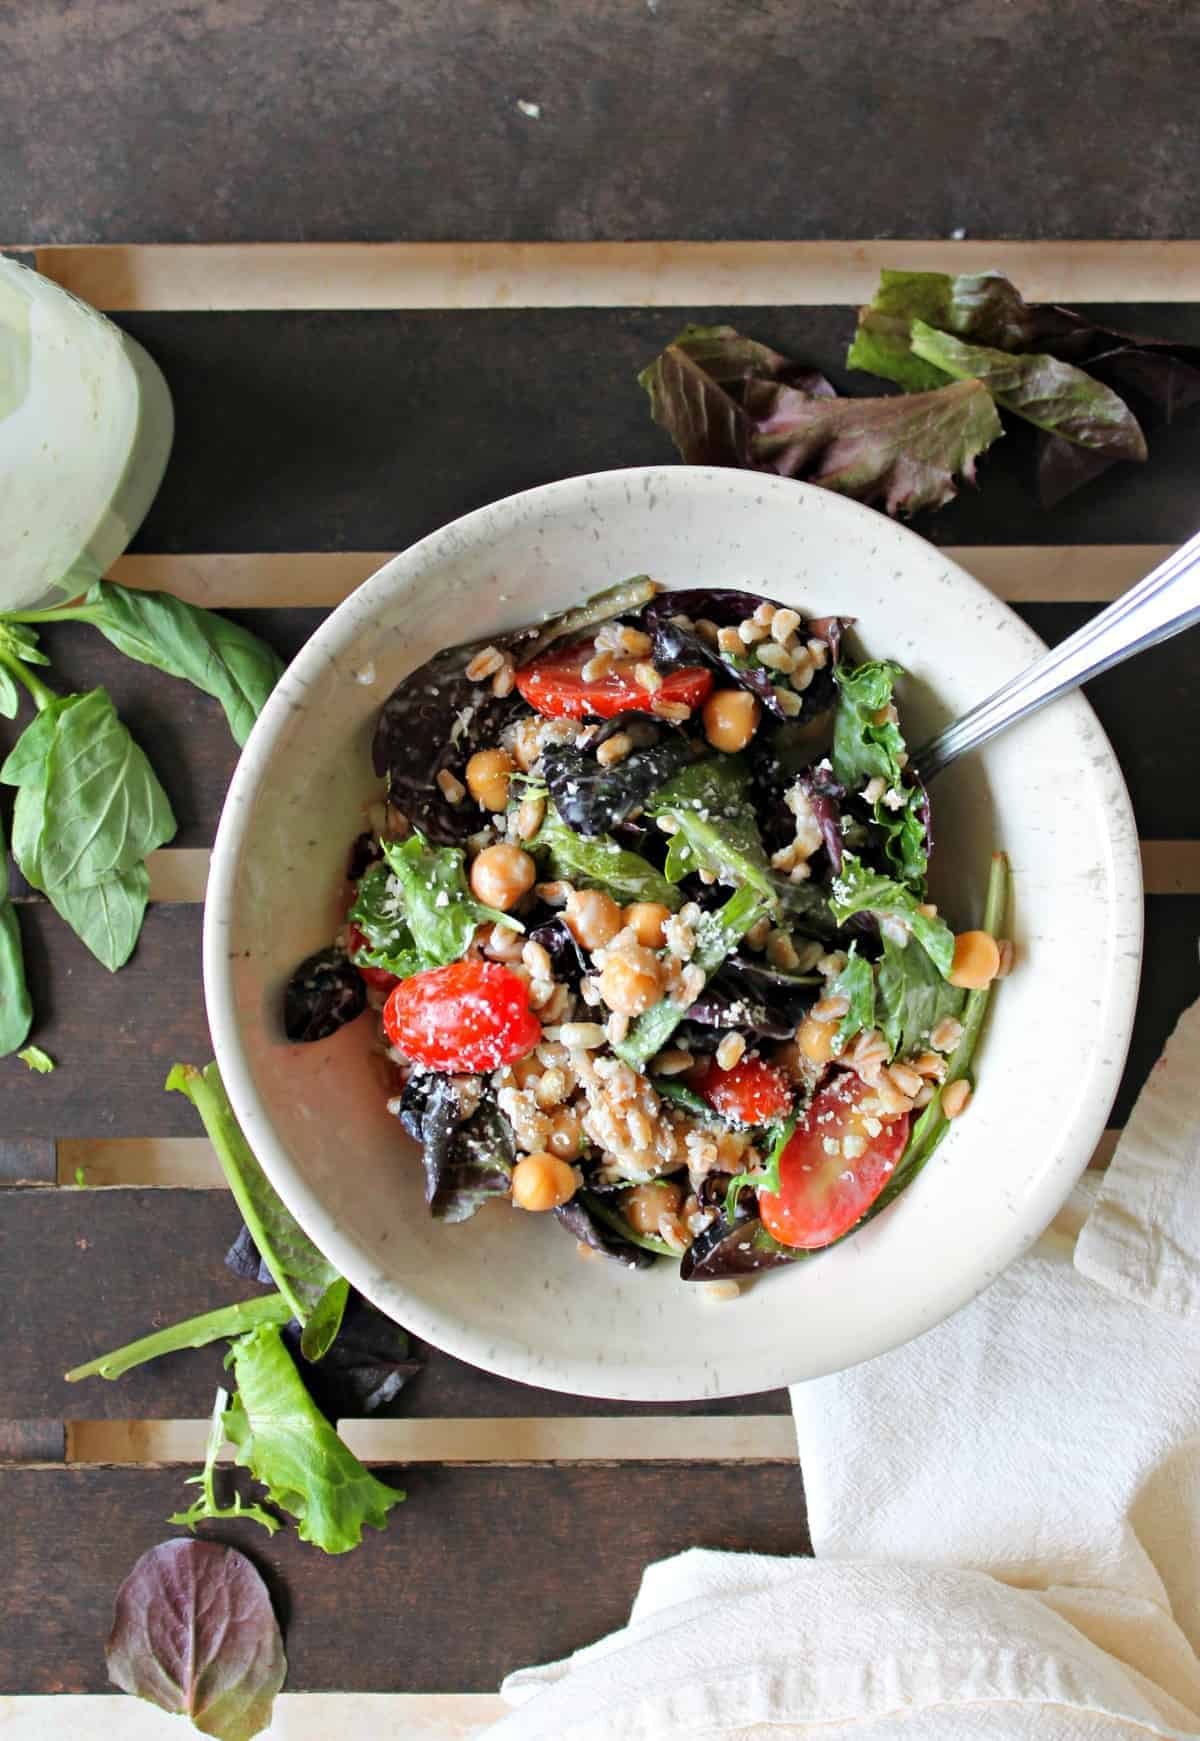 Forum on this topic: Chopped Summer Vegetable Salad with Farro, Yogurt , chopped-summer-vegetable-salad-with-farro-yogurt/